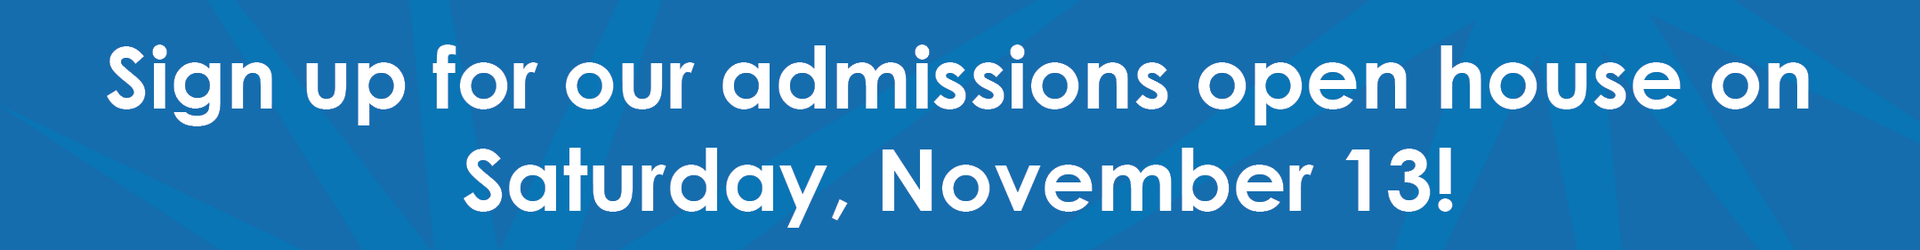 Sign up for our admissions open house on Saturday, November 13!